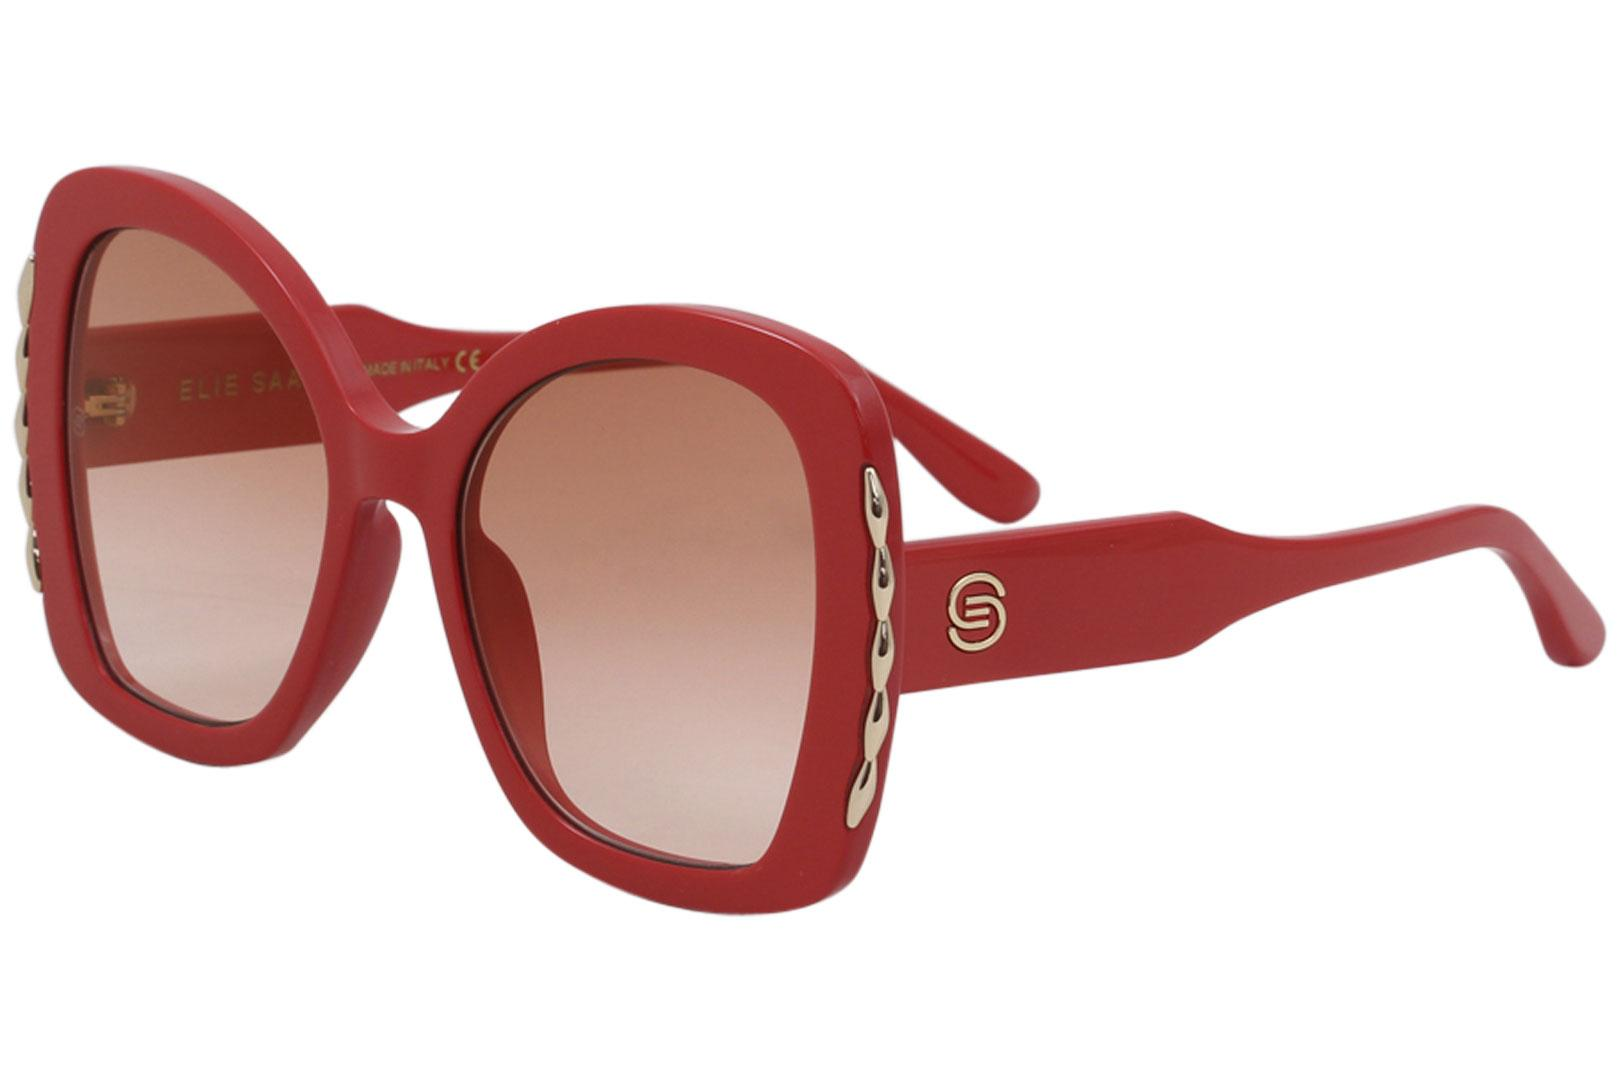 Elie Saab Women's ES030S ES/030/S C9A/30 Red Fashion Butterfly Sunglasses 56mm